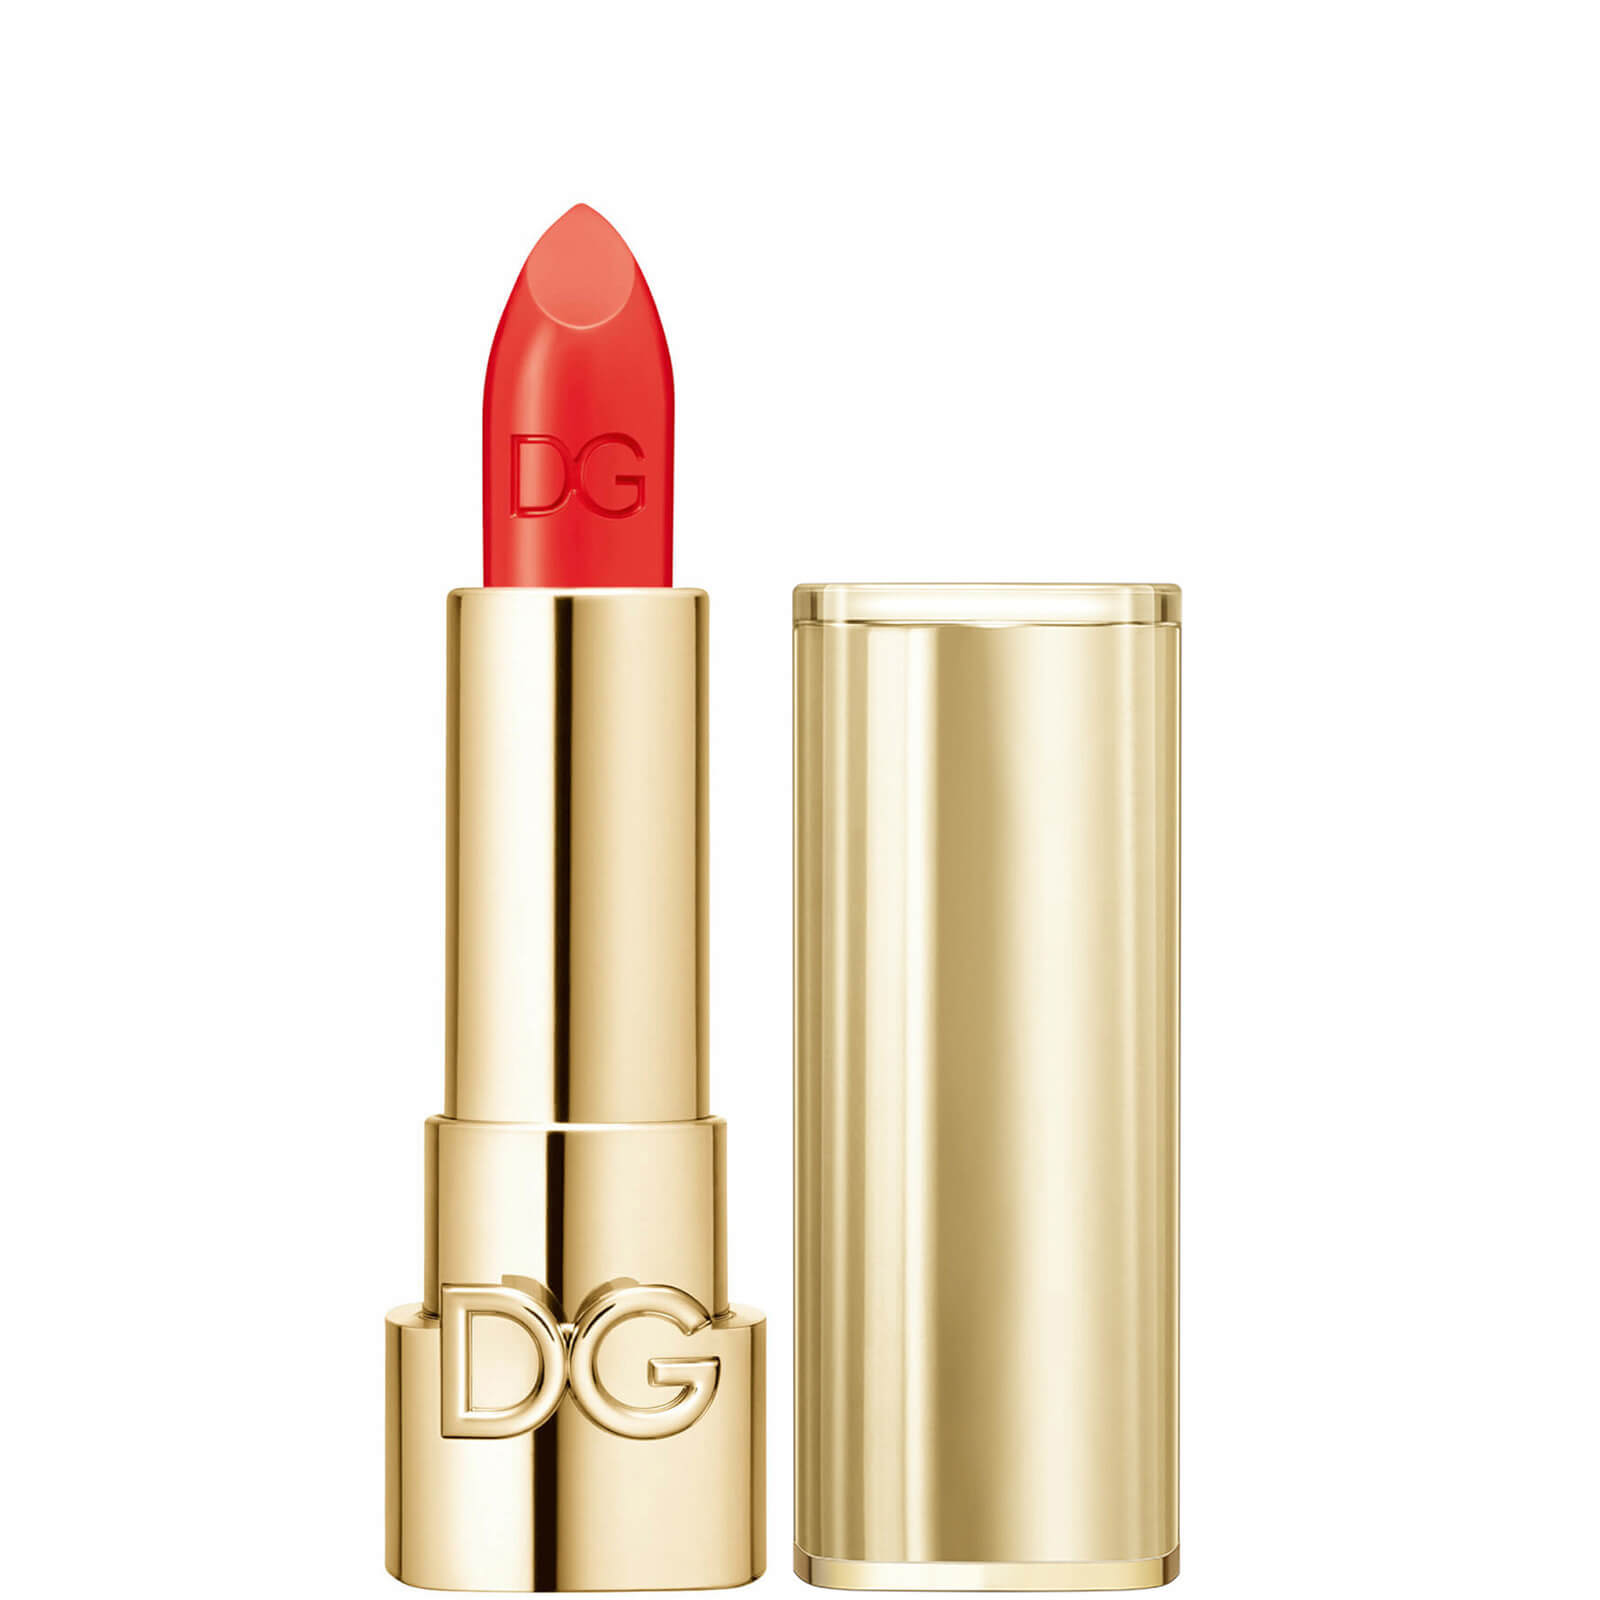 Dolce&Gabbana The Only One Lipstick + Cap (Gold) (Various Shades) - 510 Orange Vibes